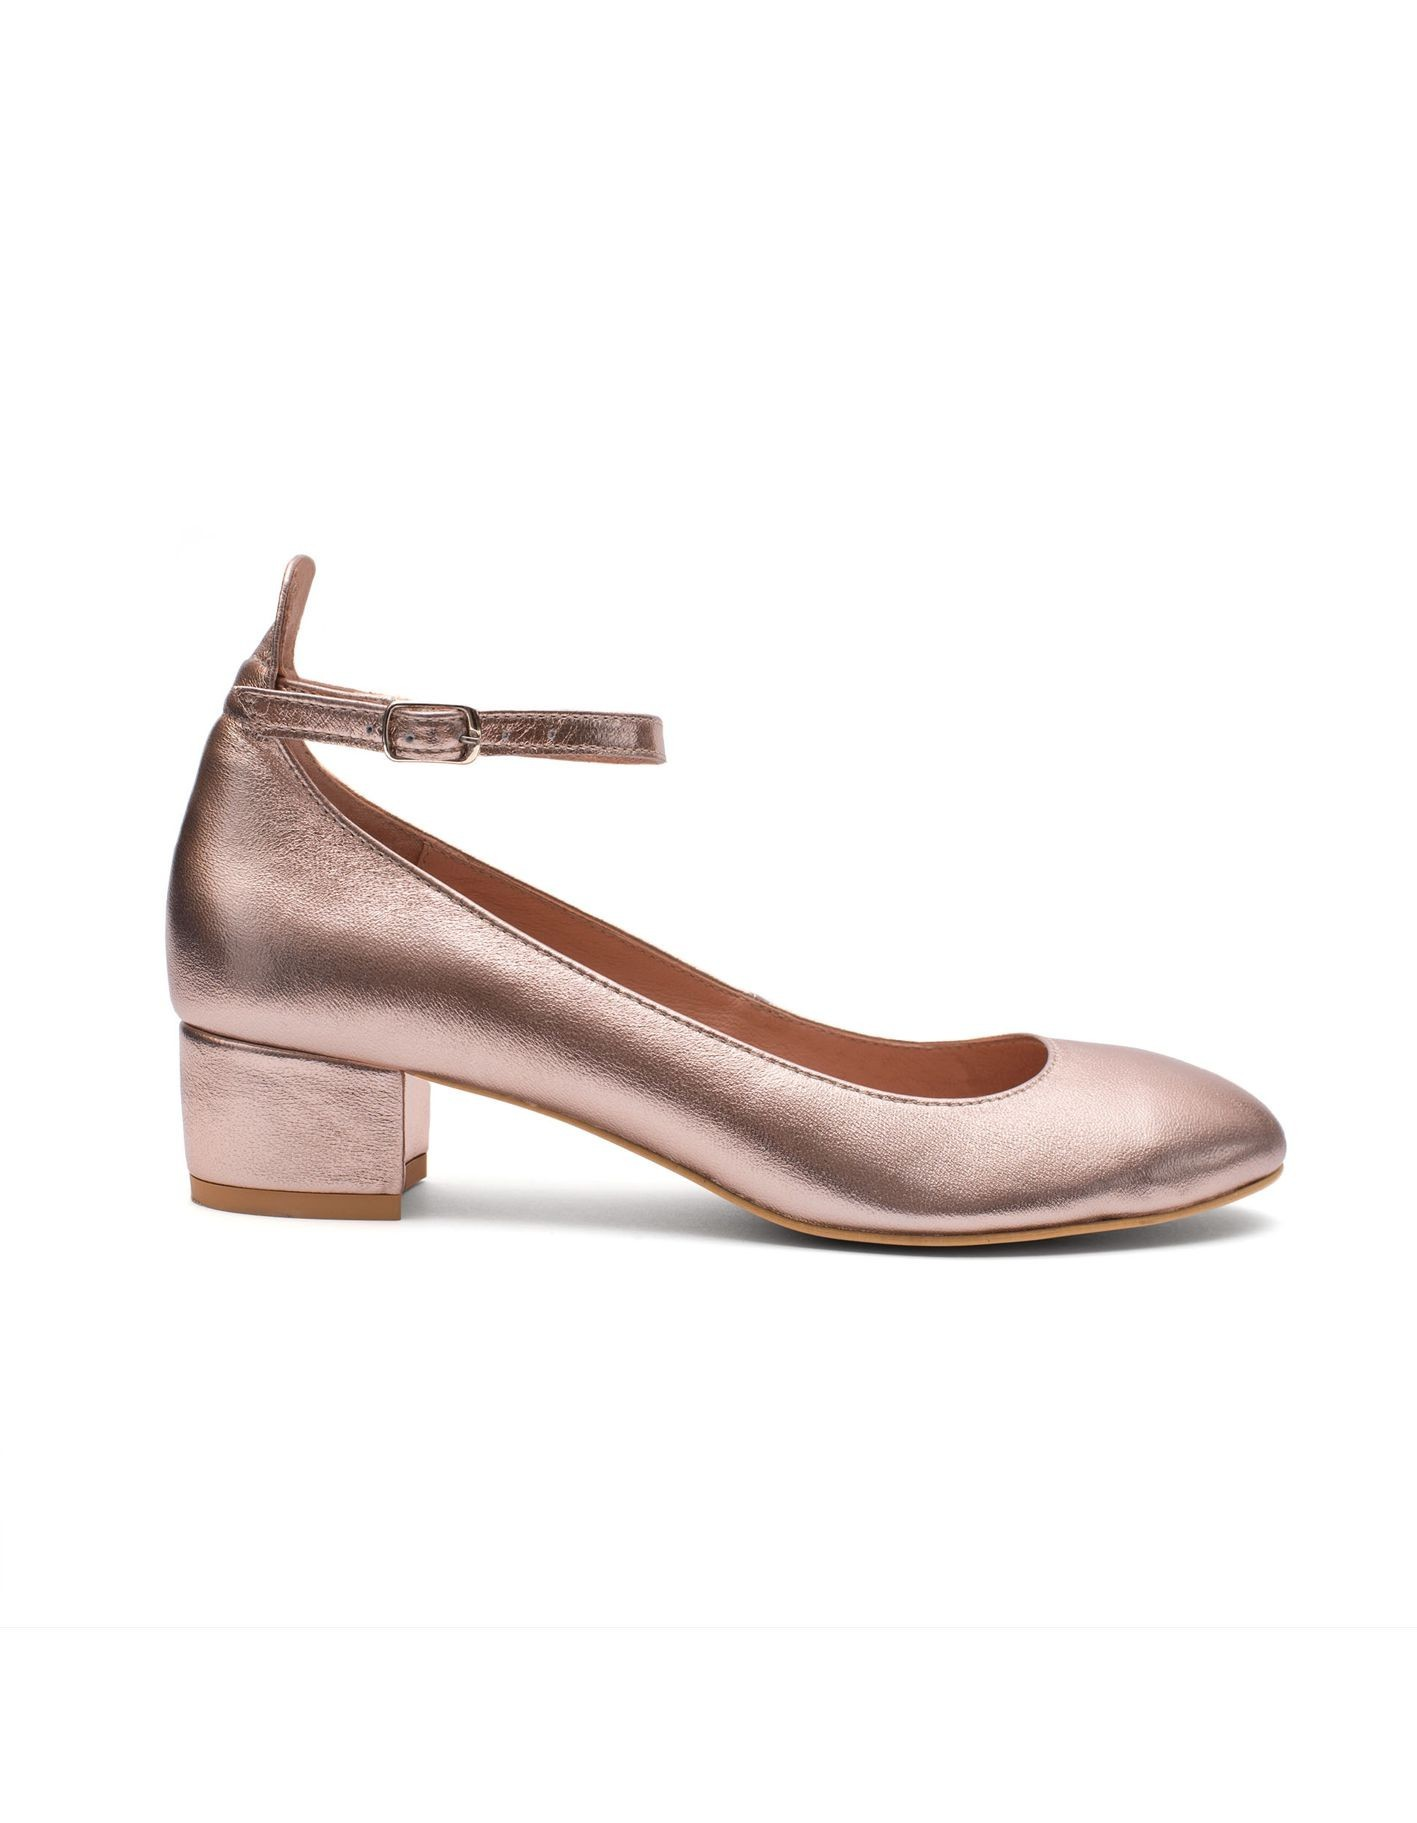 Baleriny Mary rose gold - 104698